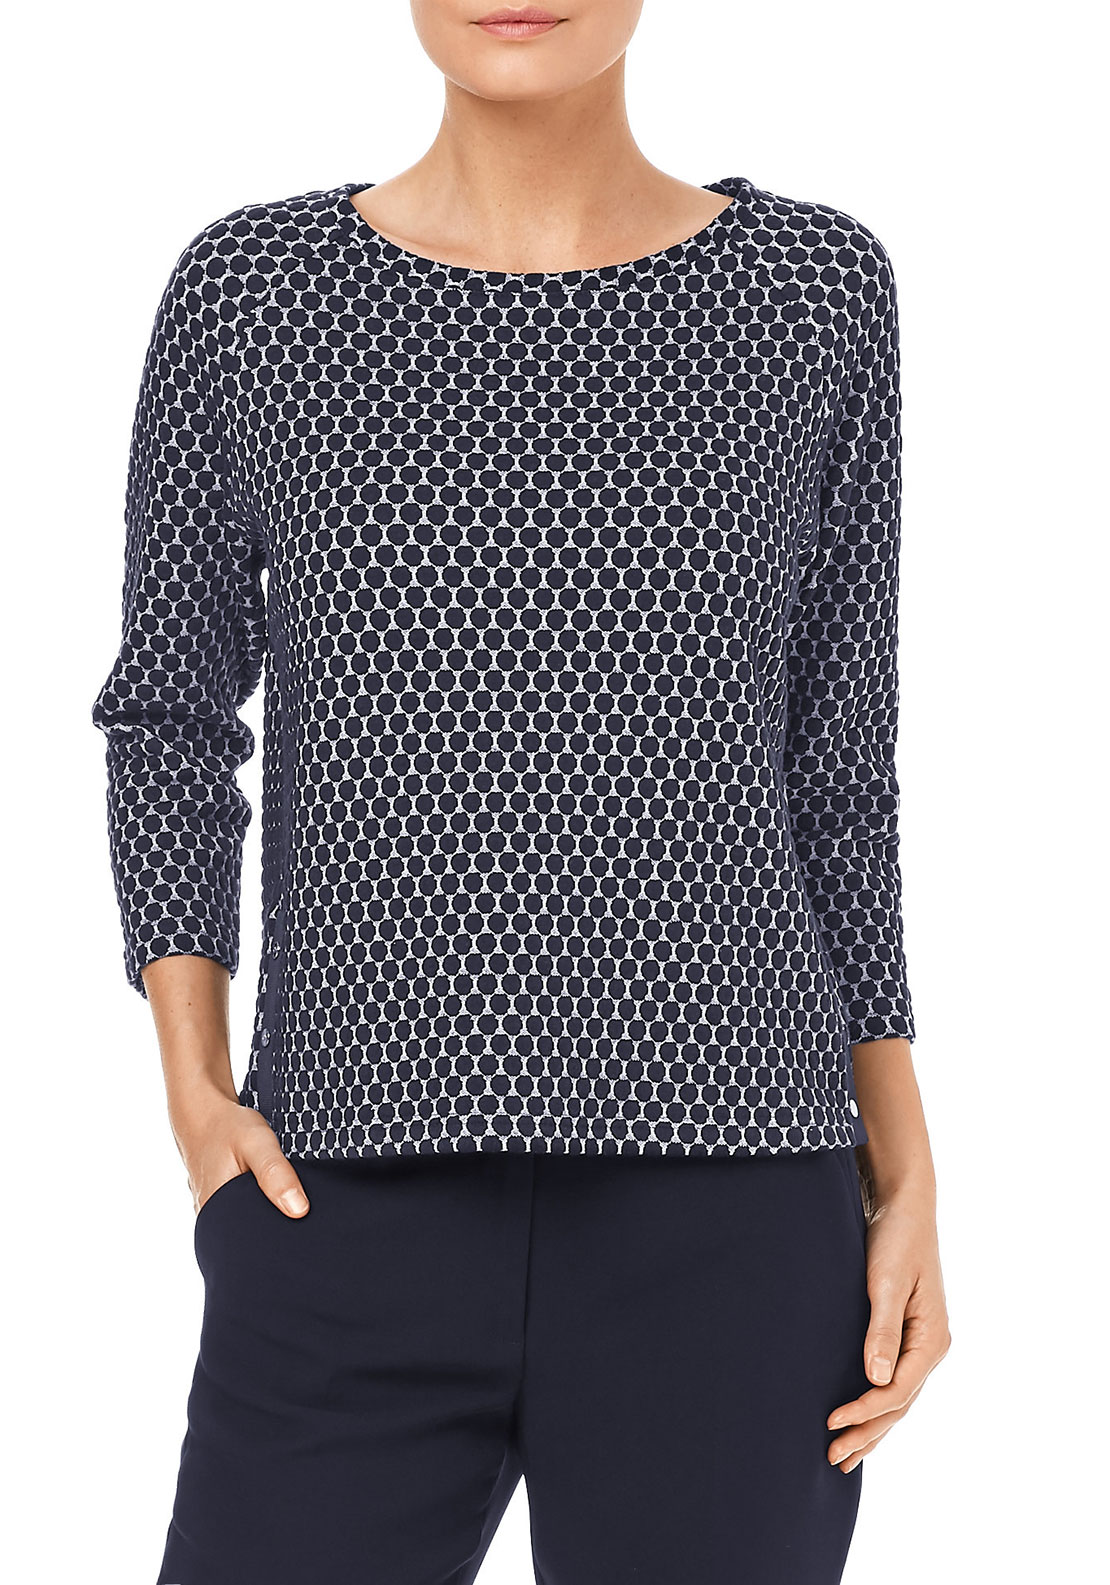 Gerry Weber Circle Print Woven Top, Navy